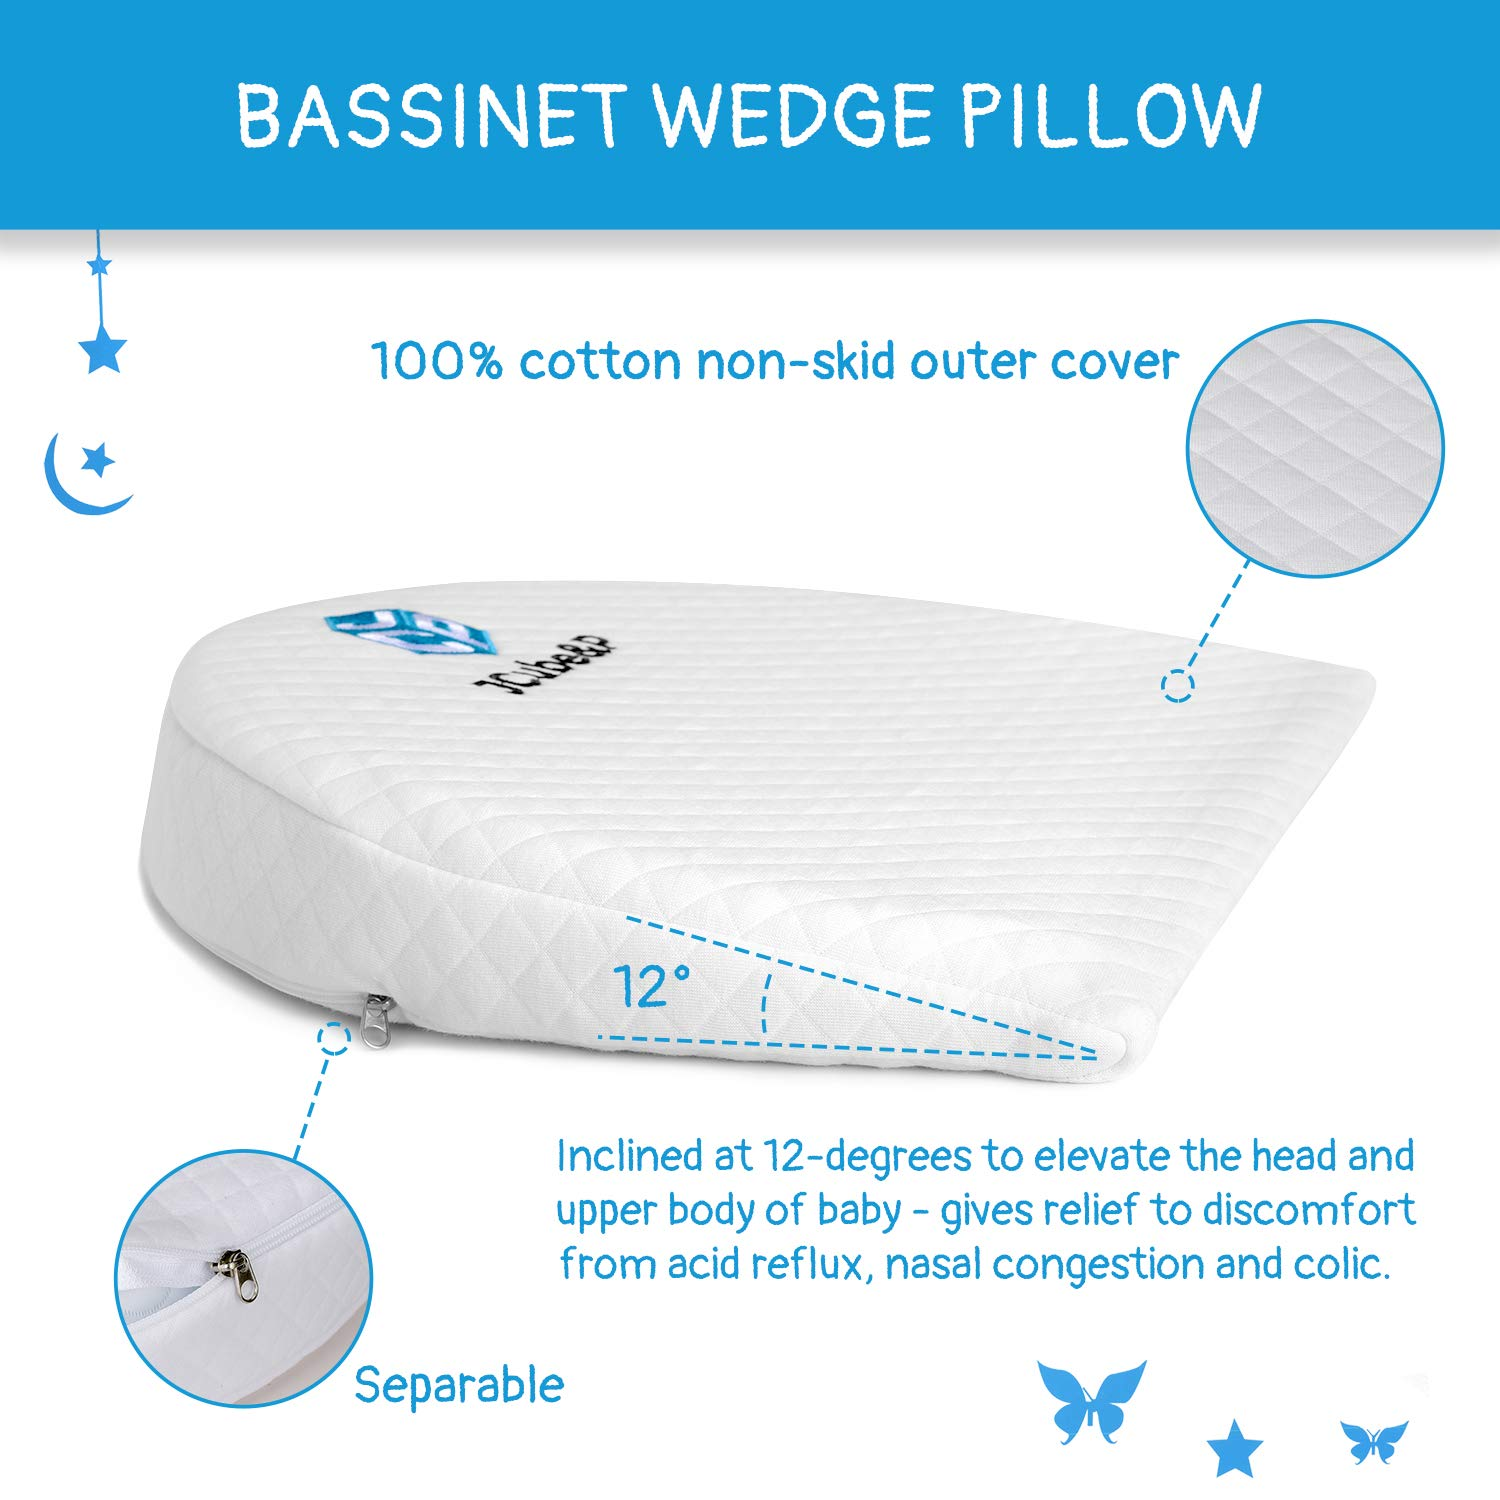 Nasal Congestion JCube/&P Bassinet Wedge Newborn Bassinet Wedge 2 Free Pacifiers Baby Bassinet Wedge Pillow with Cotton /& Waterproof Covers Colic /& Acid Reflux Relief Bassinet Wedge Pad